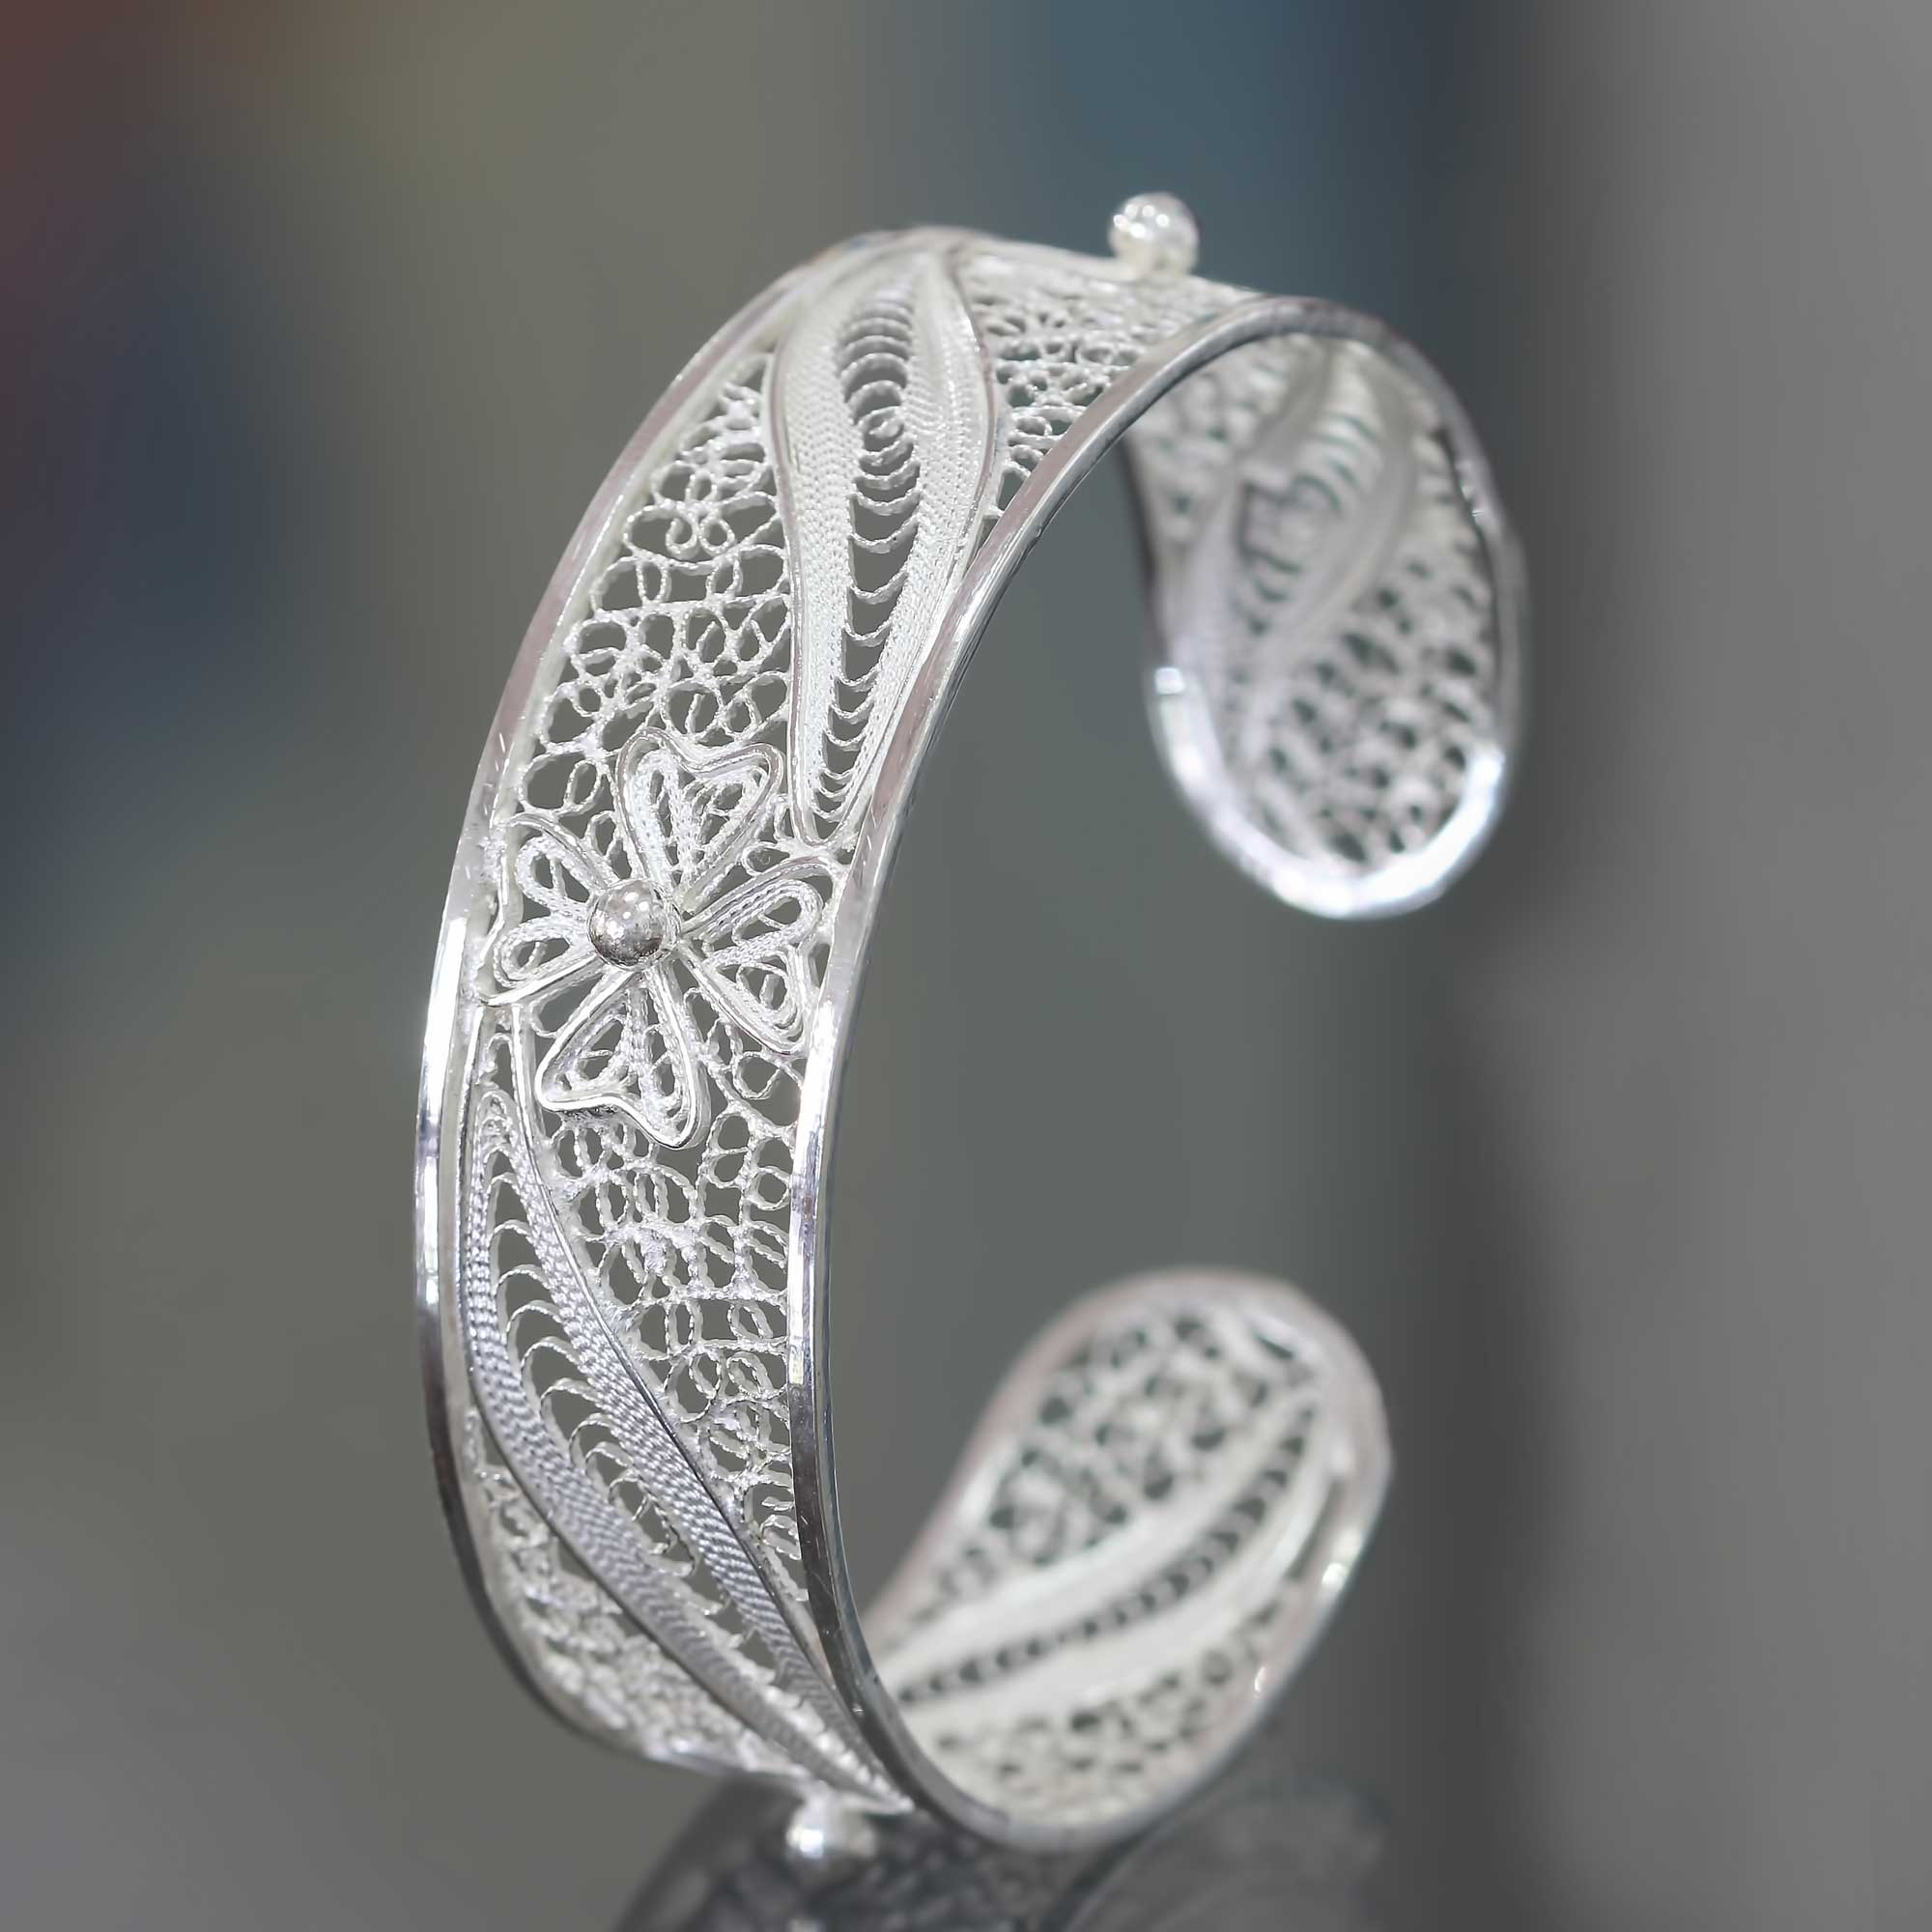 New Beautiful Hand Crafted .925 Sterling Silver Cuff